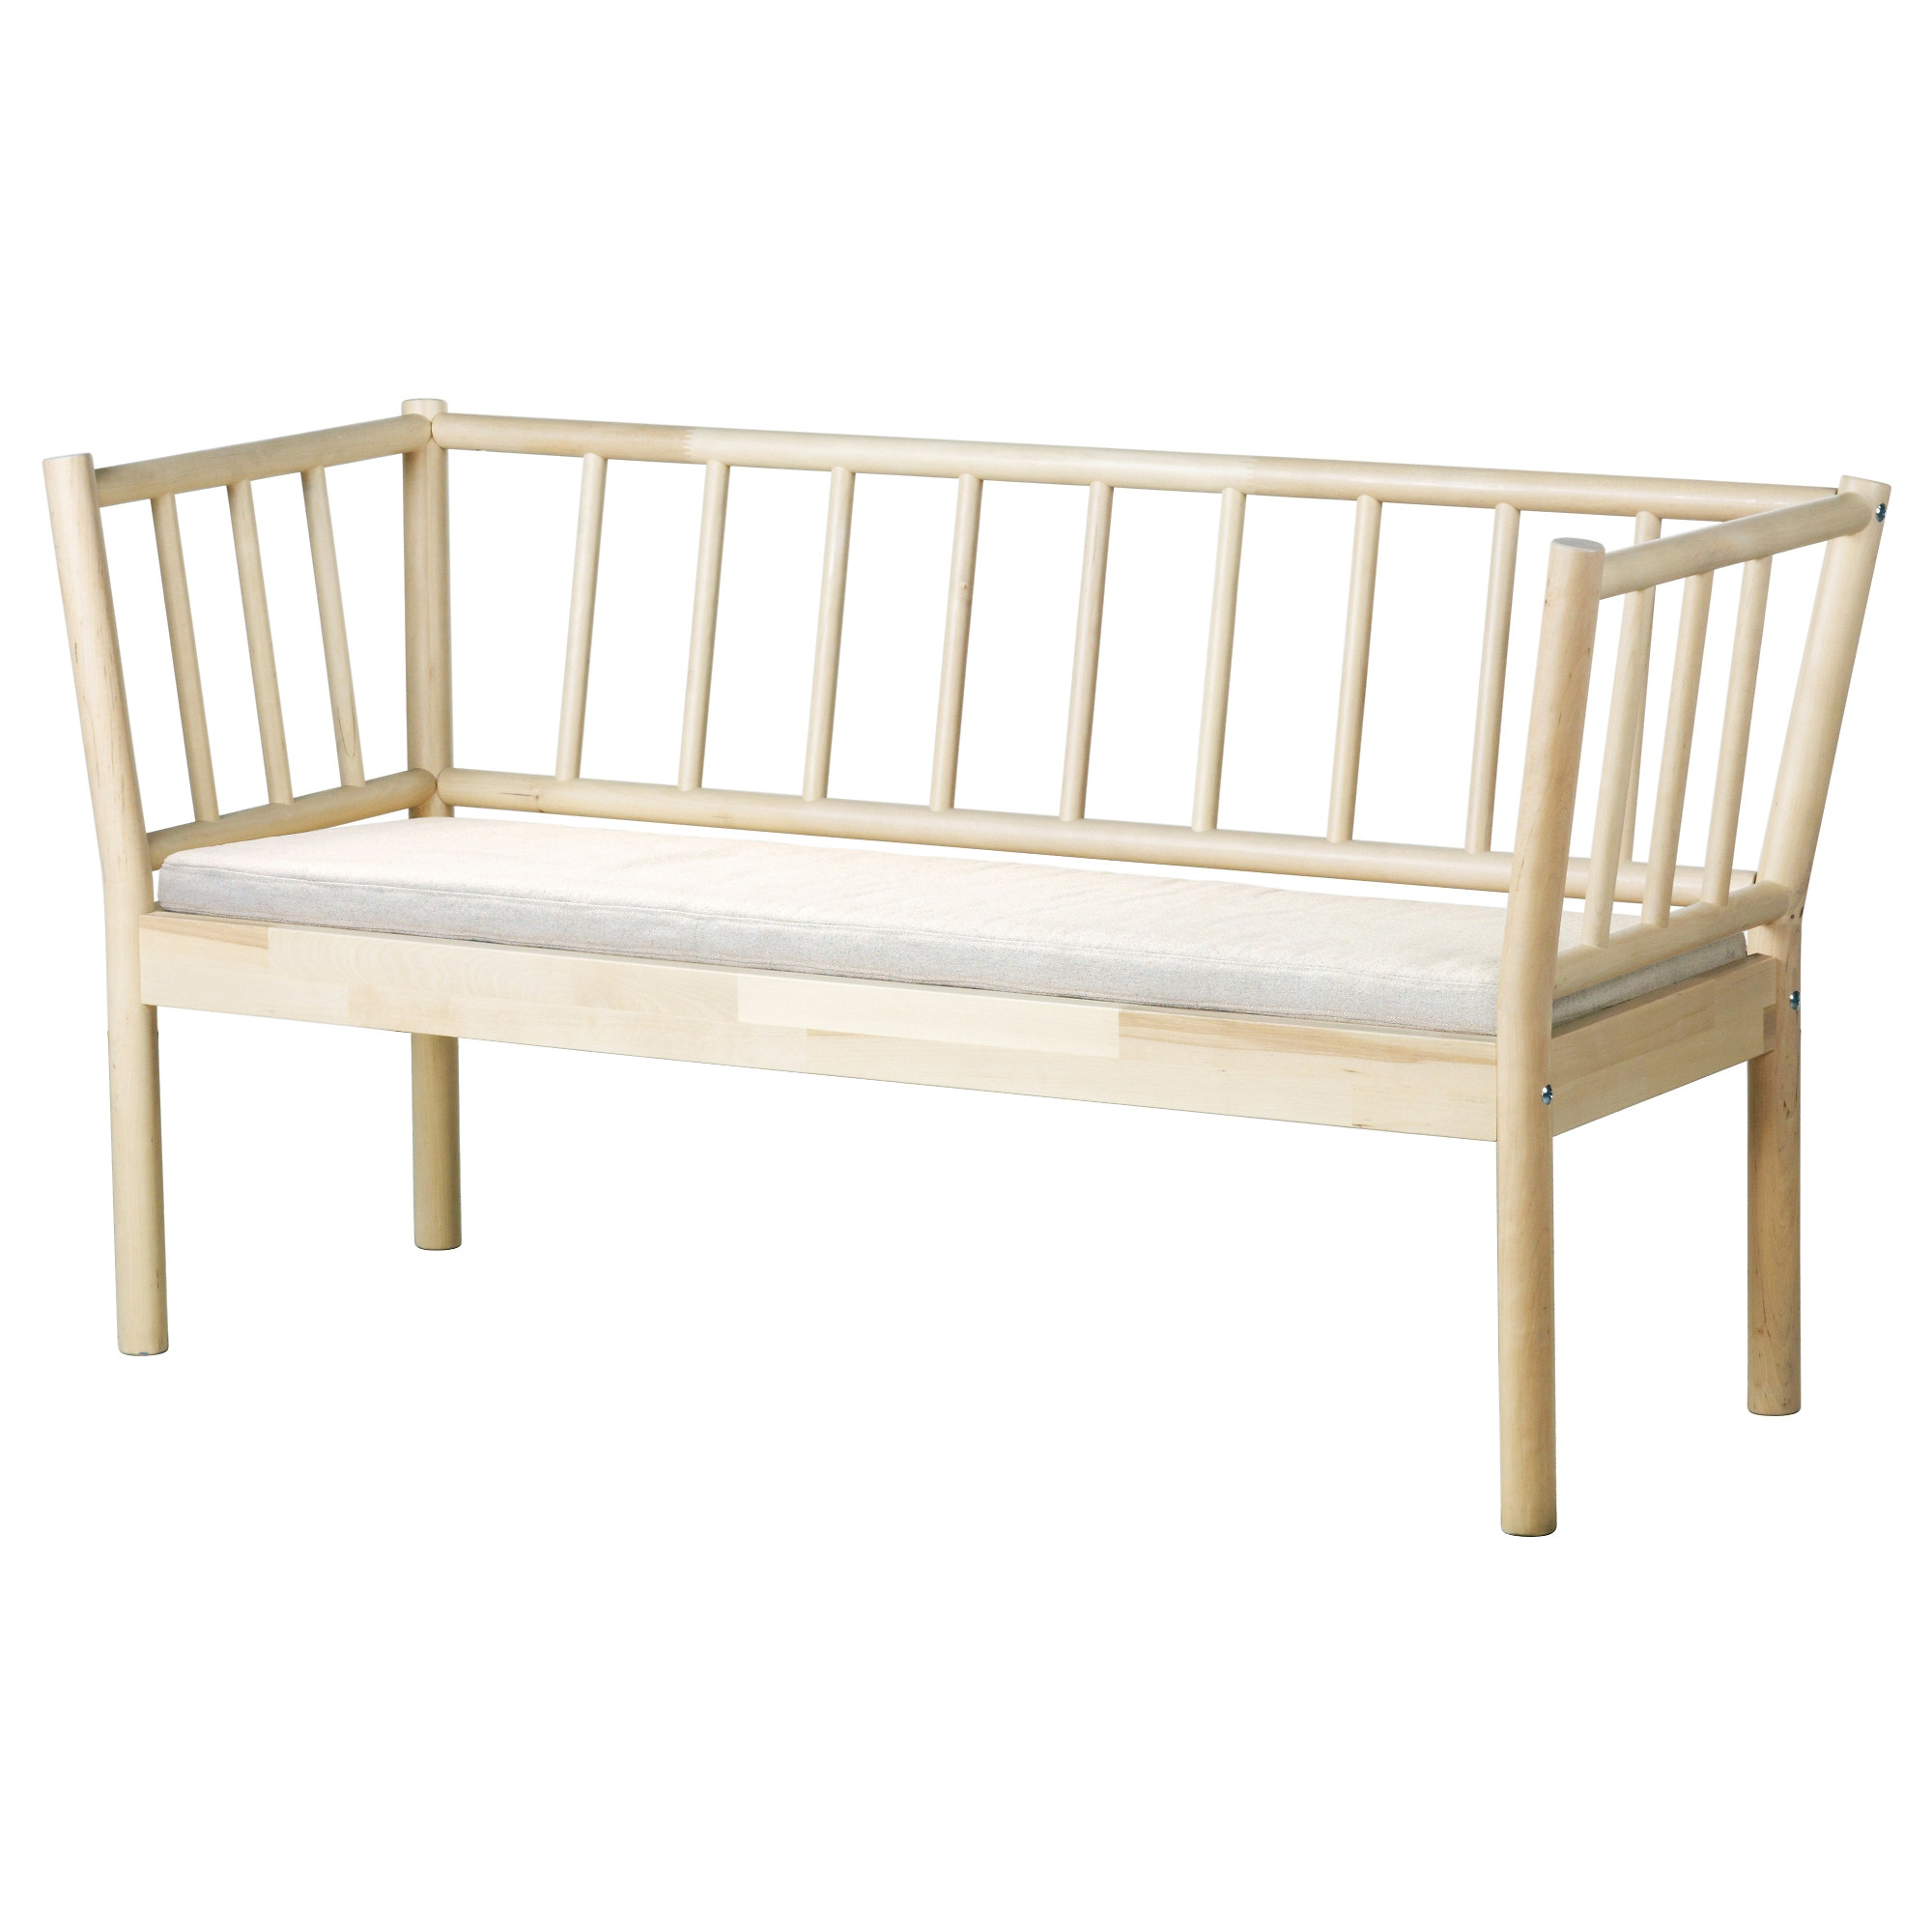 tufted dining bench with back bjarksnas high back bench with pad birch risane natural width